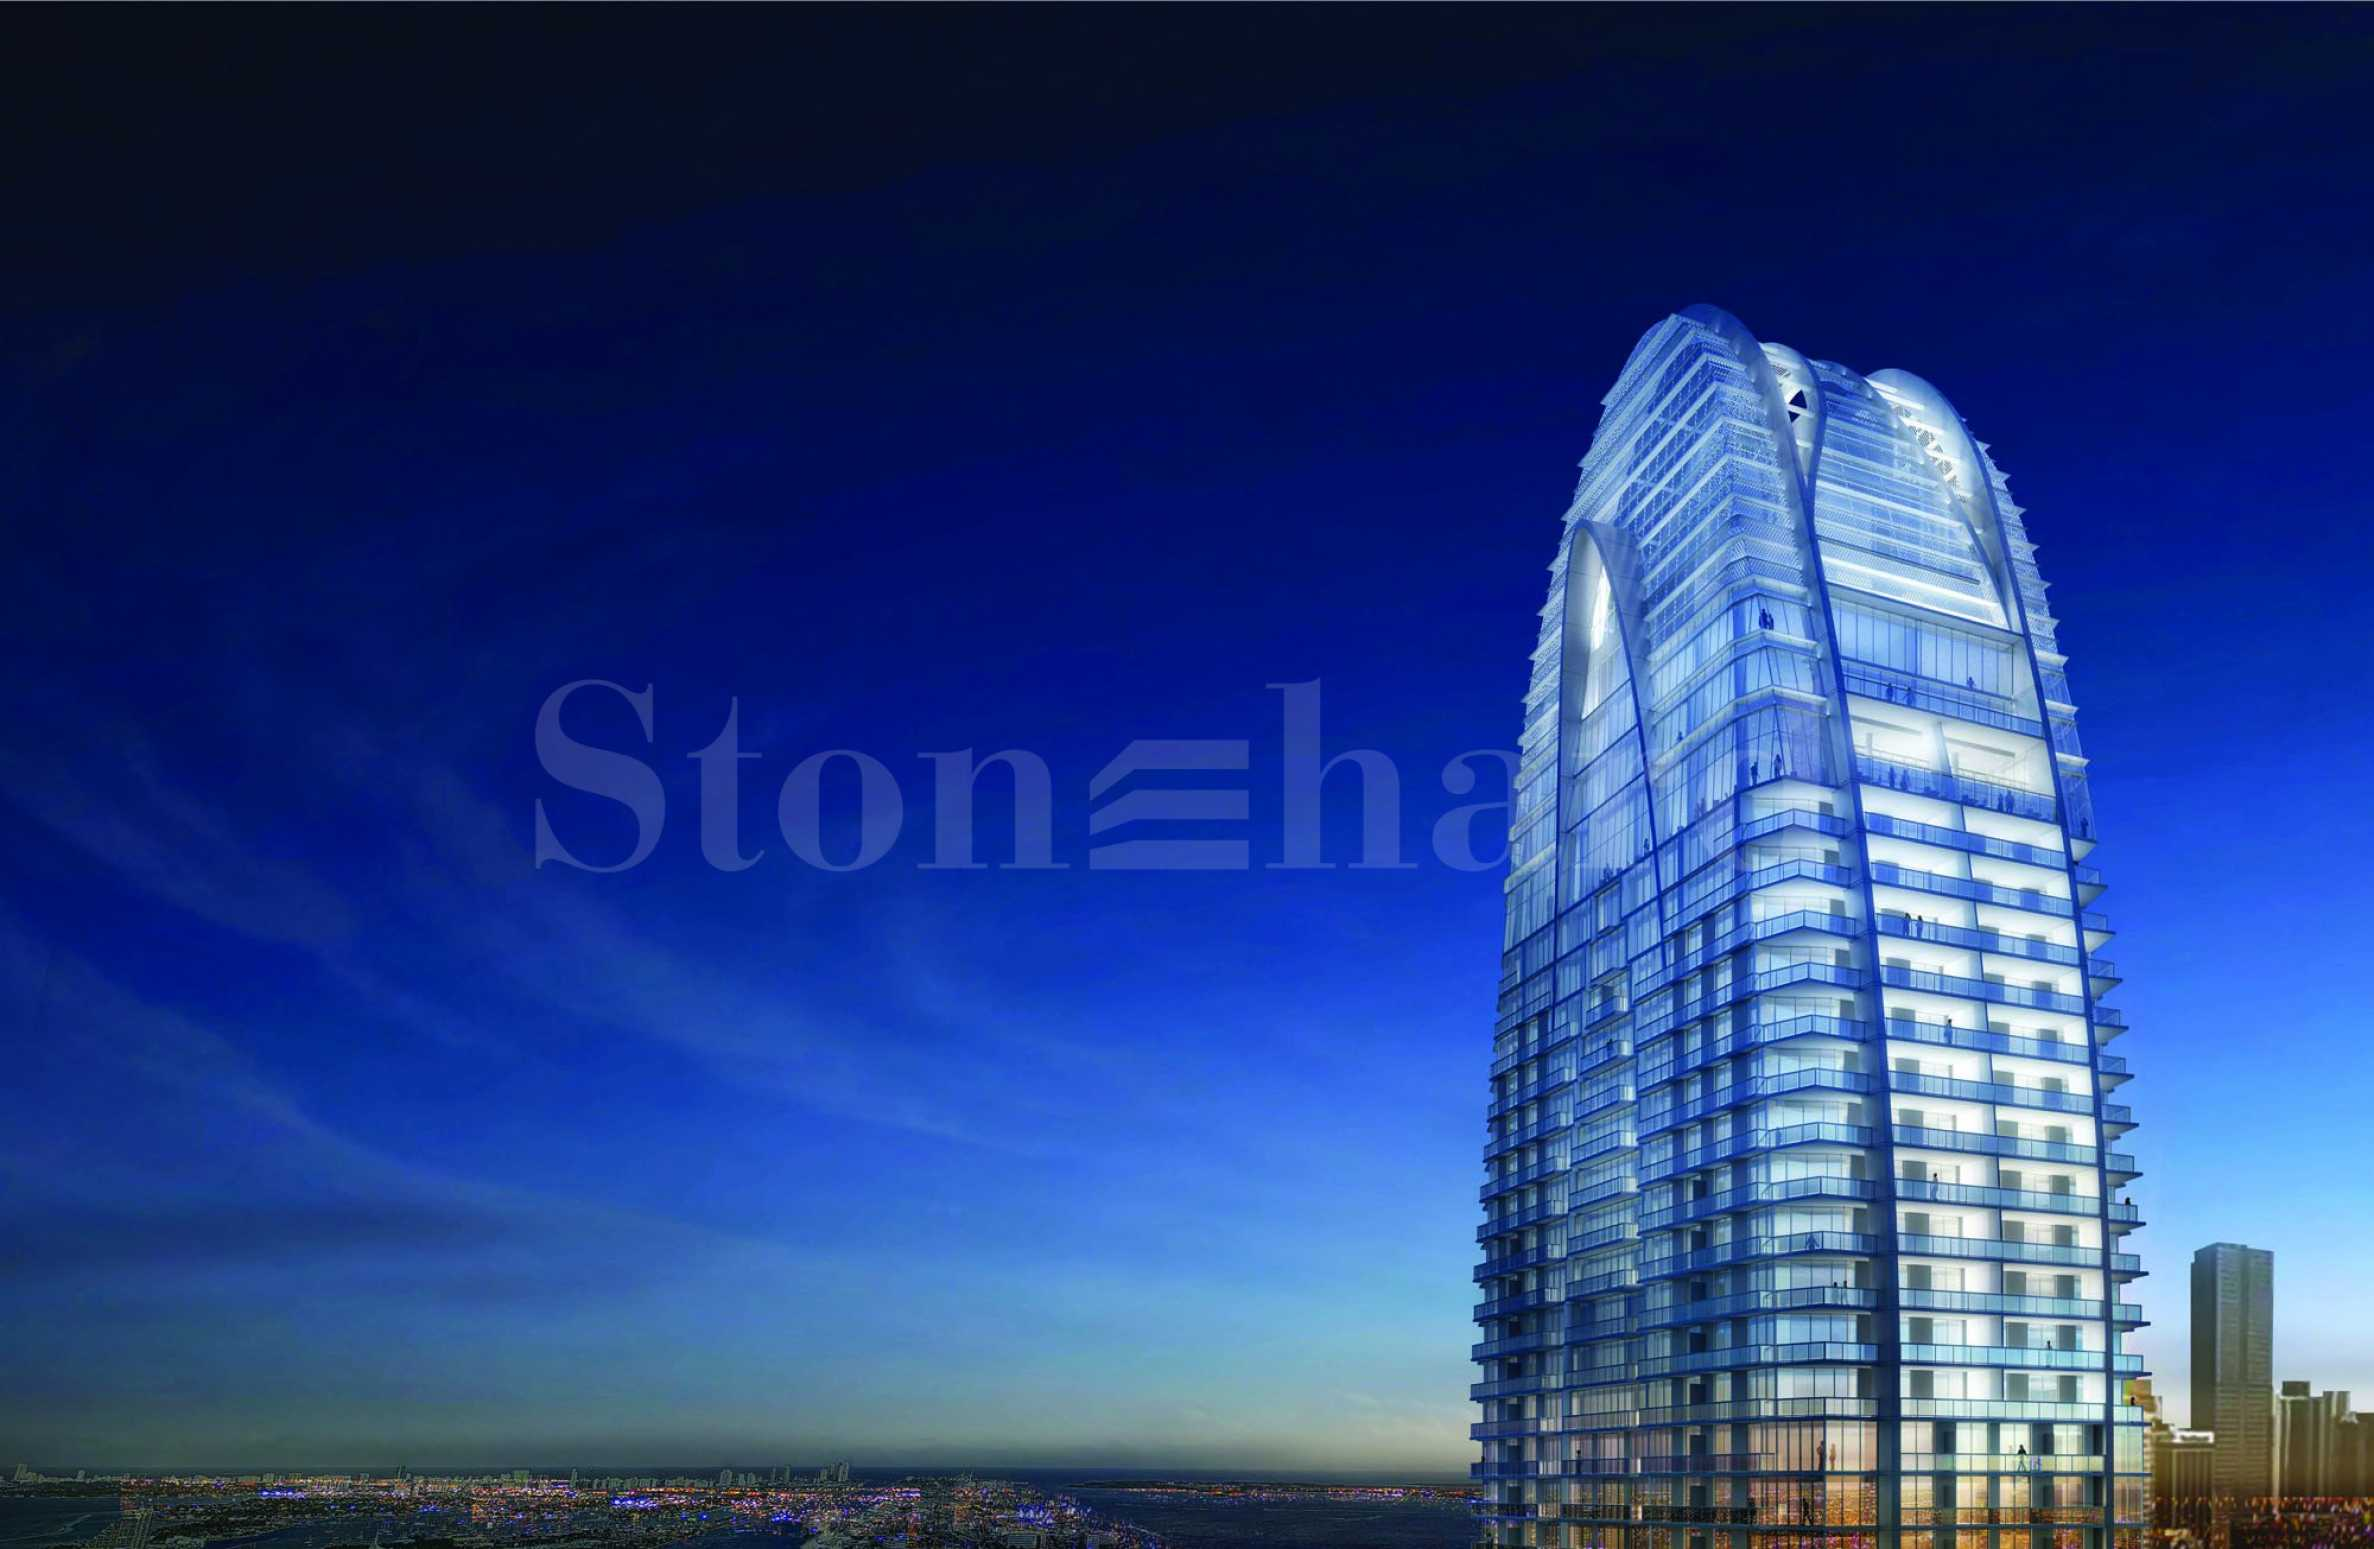 Skyscraper with luxury apartments and penthouses in Miami Florida1 - Stonehard